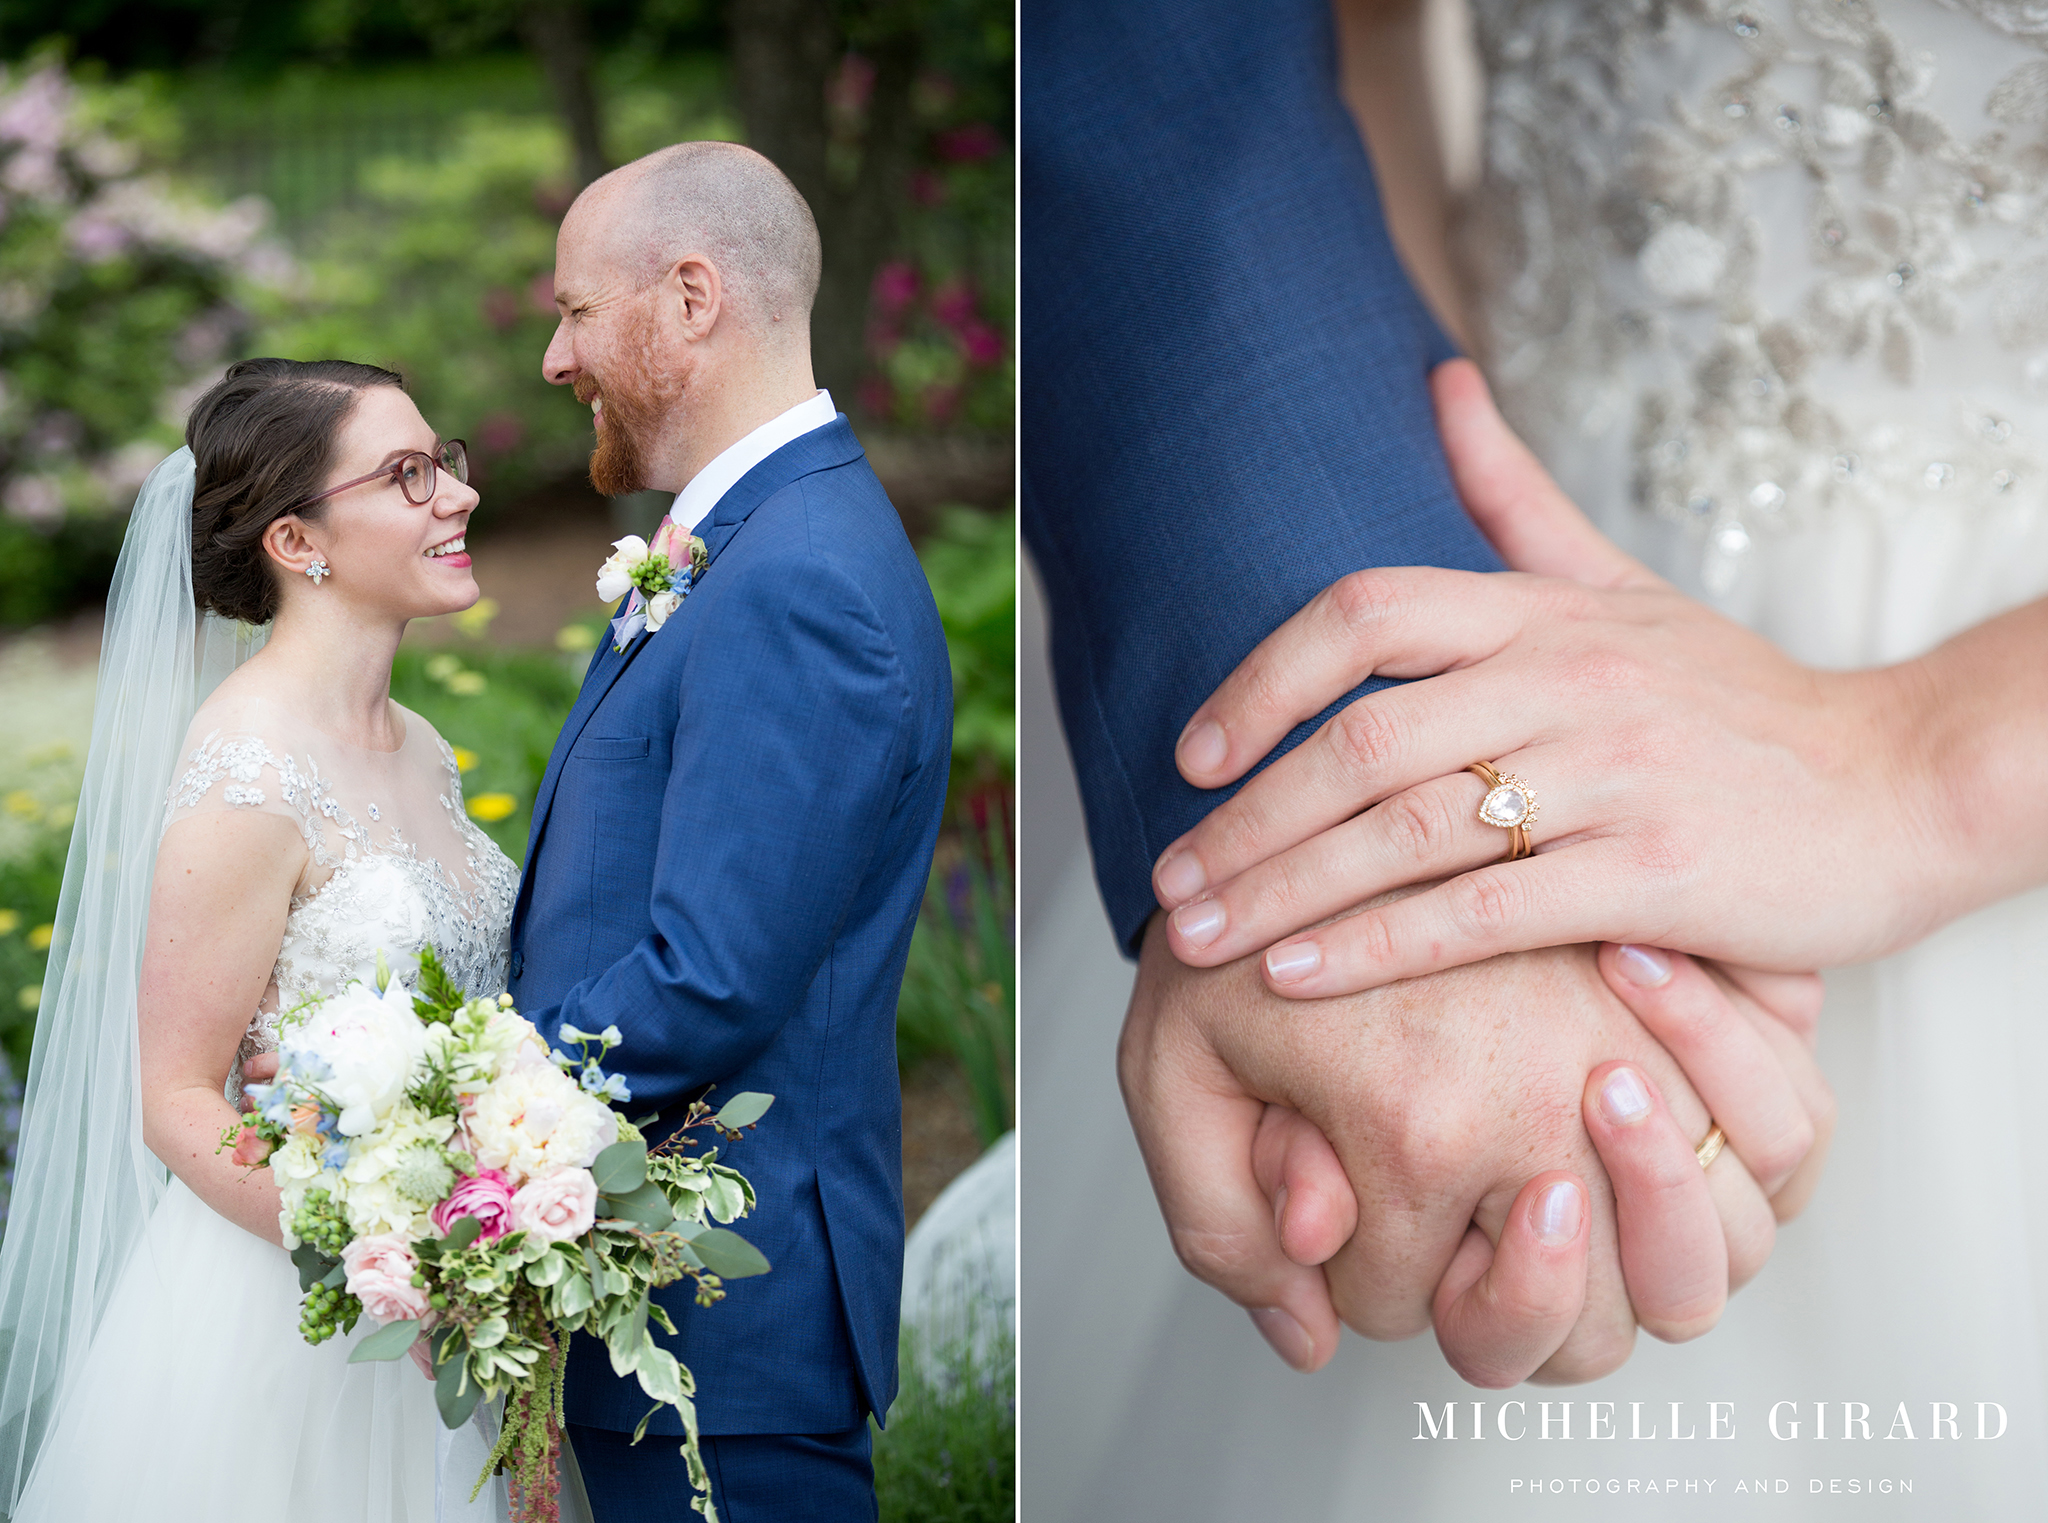 GardenHouse_LookParkWedding_NorthamptonMA_MichelleGirardPhotography1b.jpg